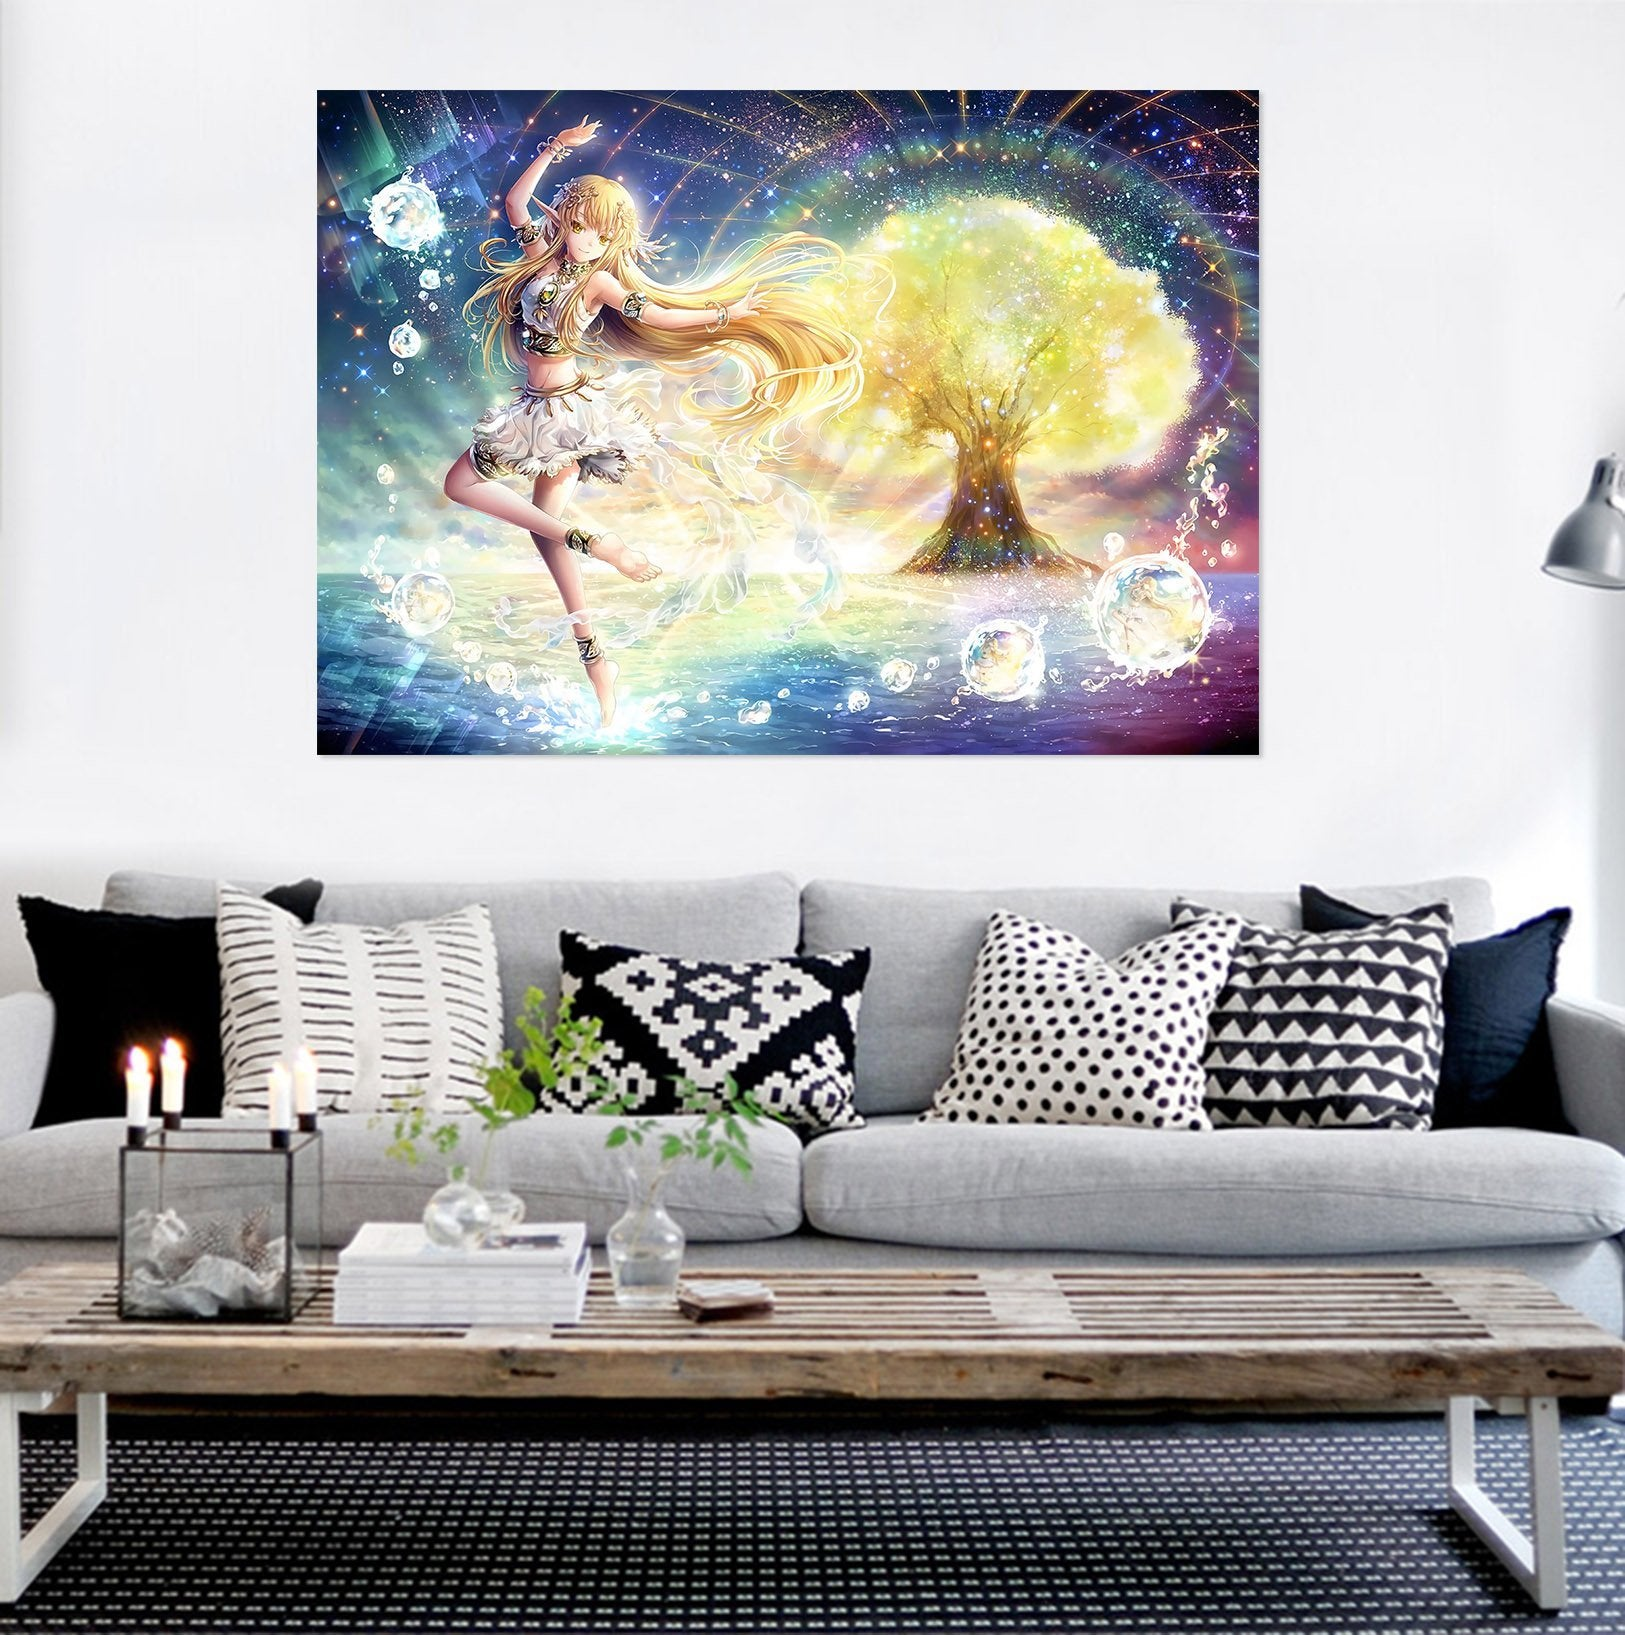 3D The Elven Maiden 882 Anime Wall Stickers Wallpaper AJ Wallpaper 2